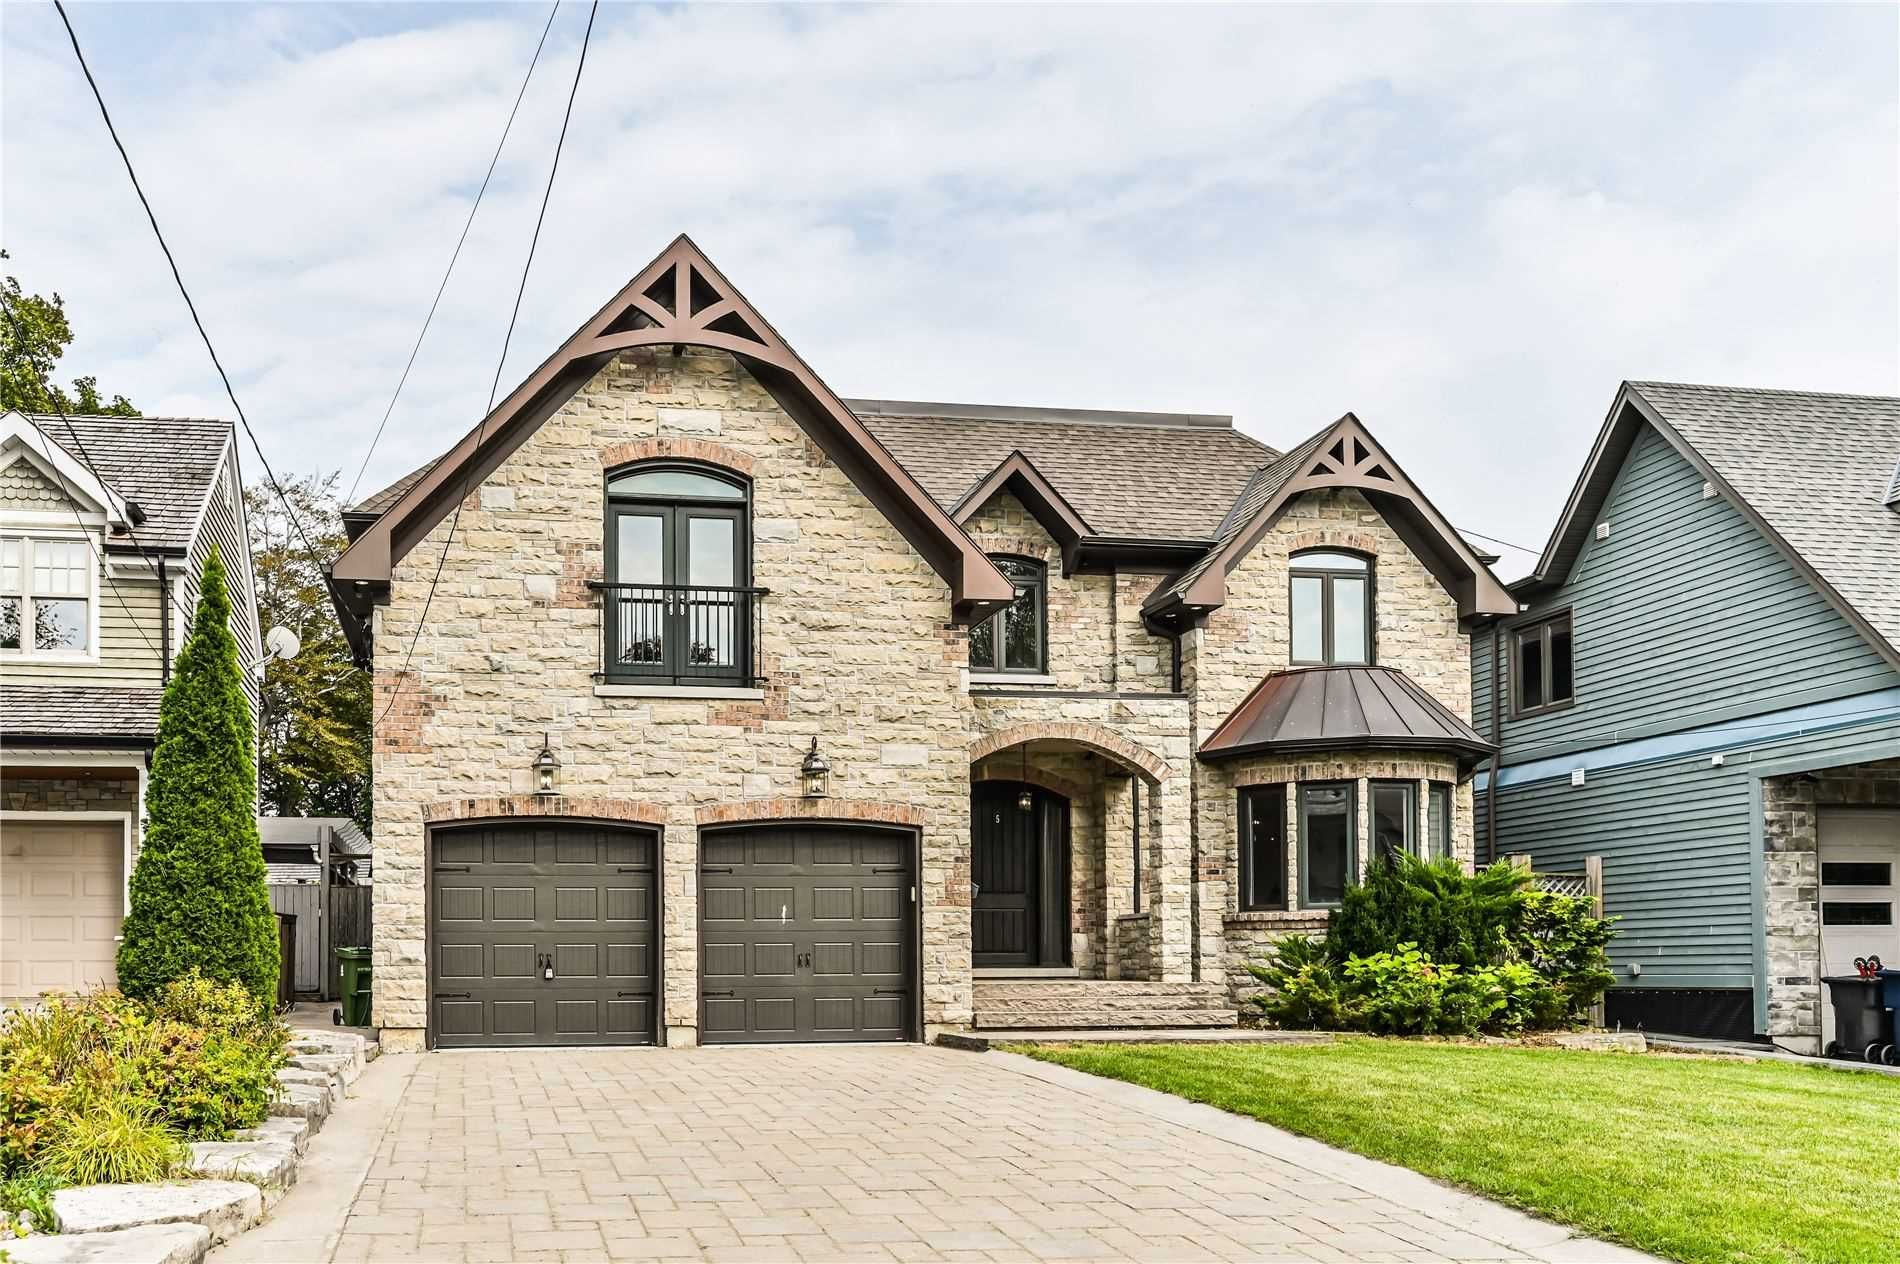 Main Photo: 5 Fenwood Heights in Toronto: Cliffcrest House (2-Storey) for sale (Toronto E08)  : MLS®# E5372370